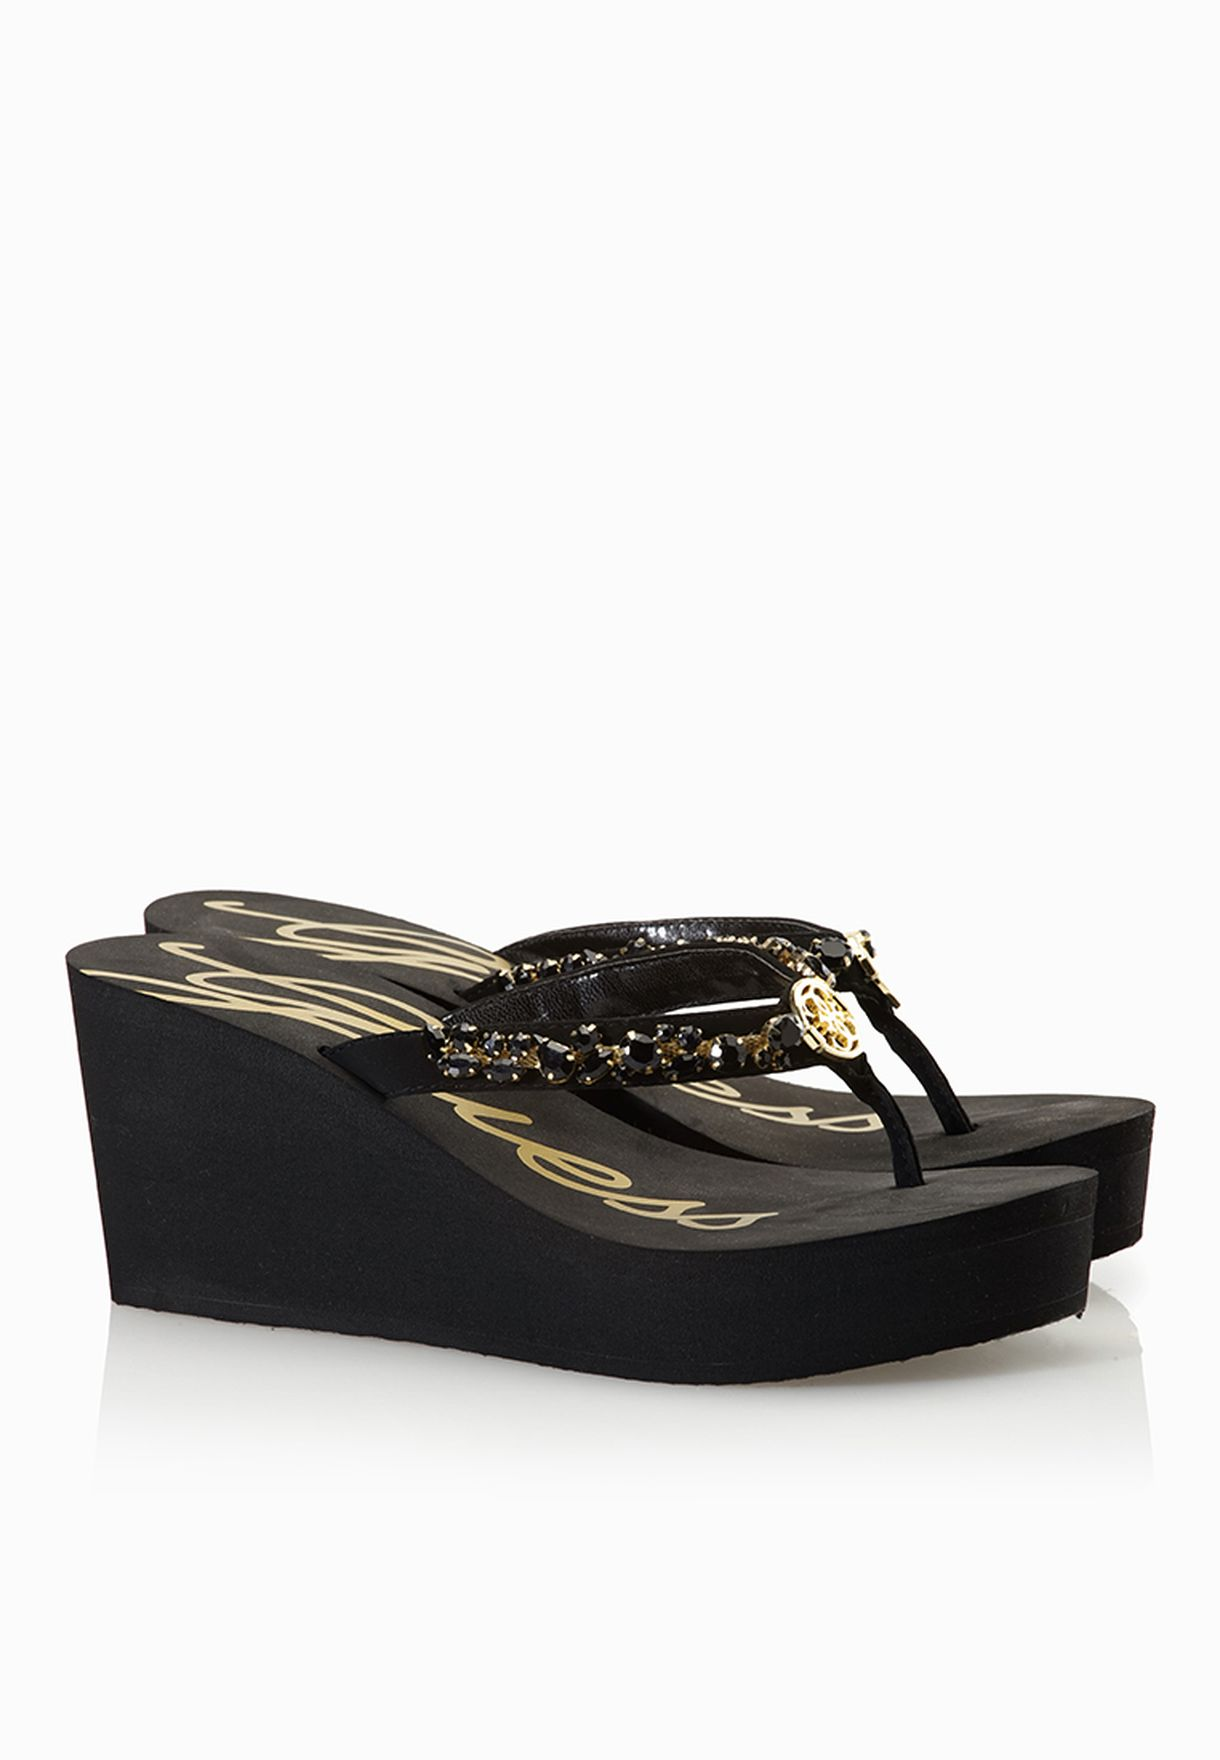 83d2b5bbd Shop Guess black Jewelled Sandals gwSABELL-B for Women in Oman ...